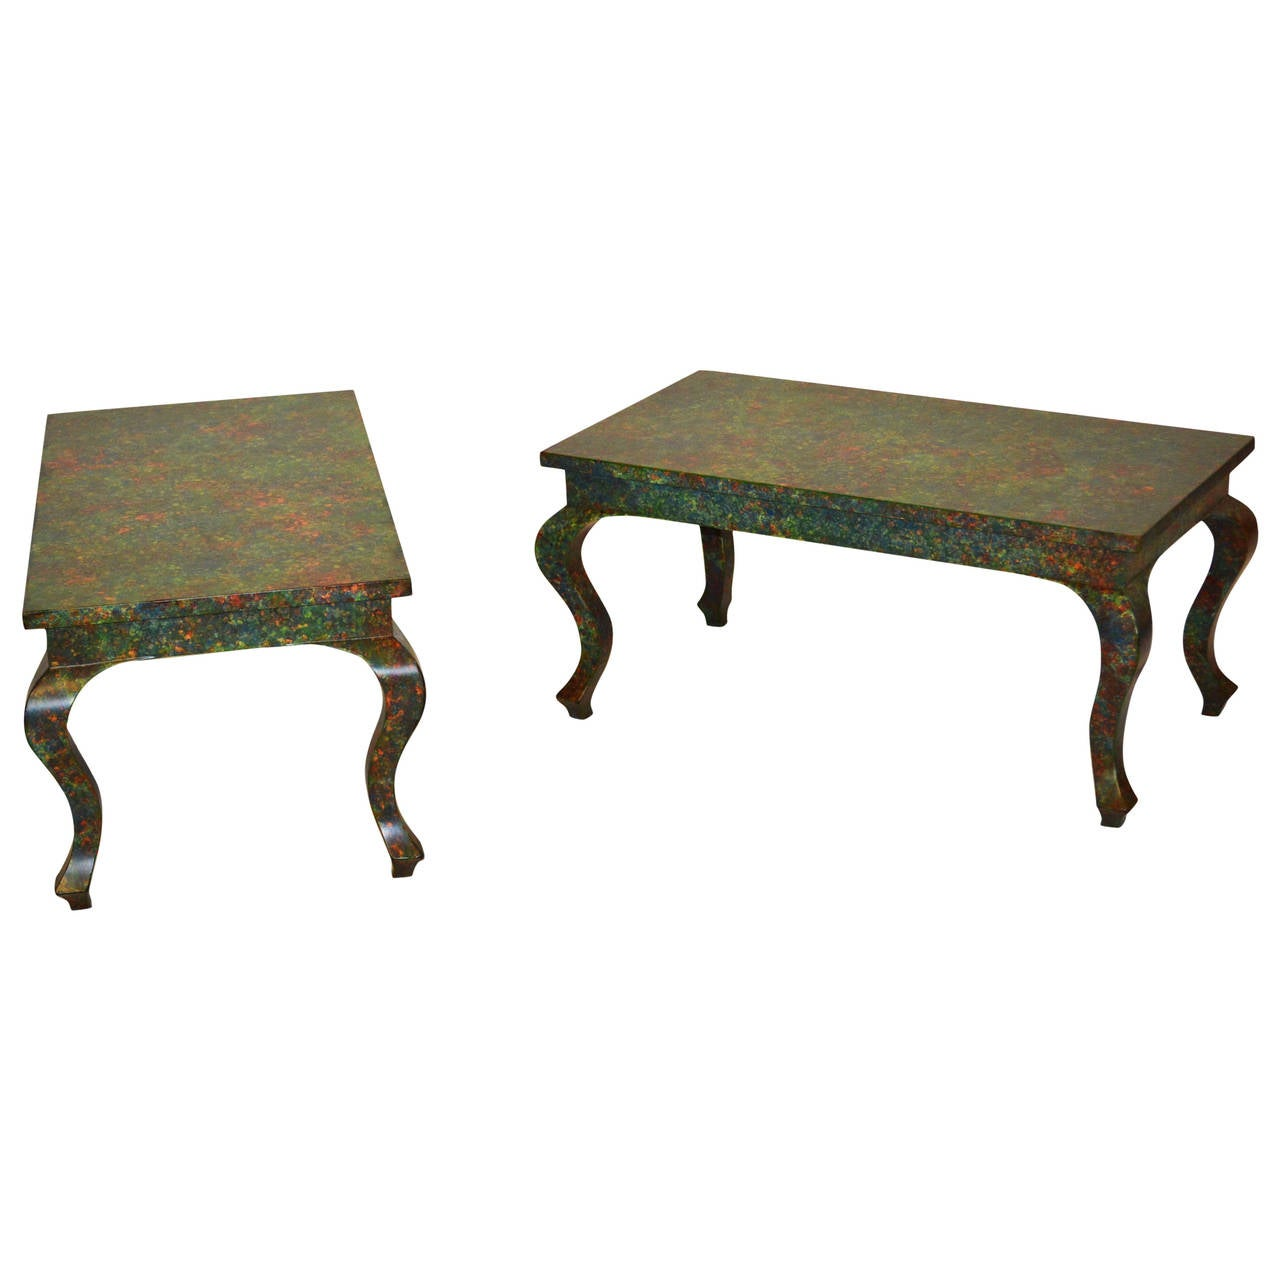 Pair of Chinese Inspired Vintage Coffee Tables